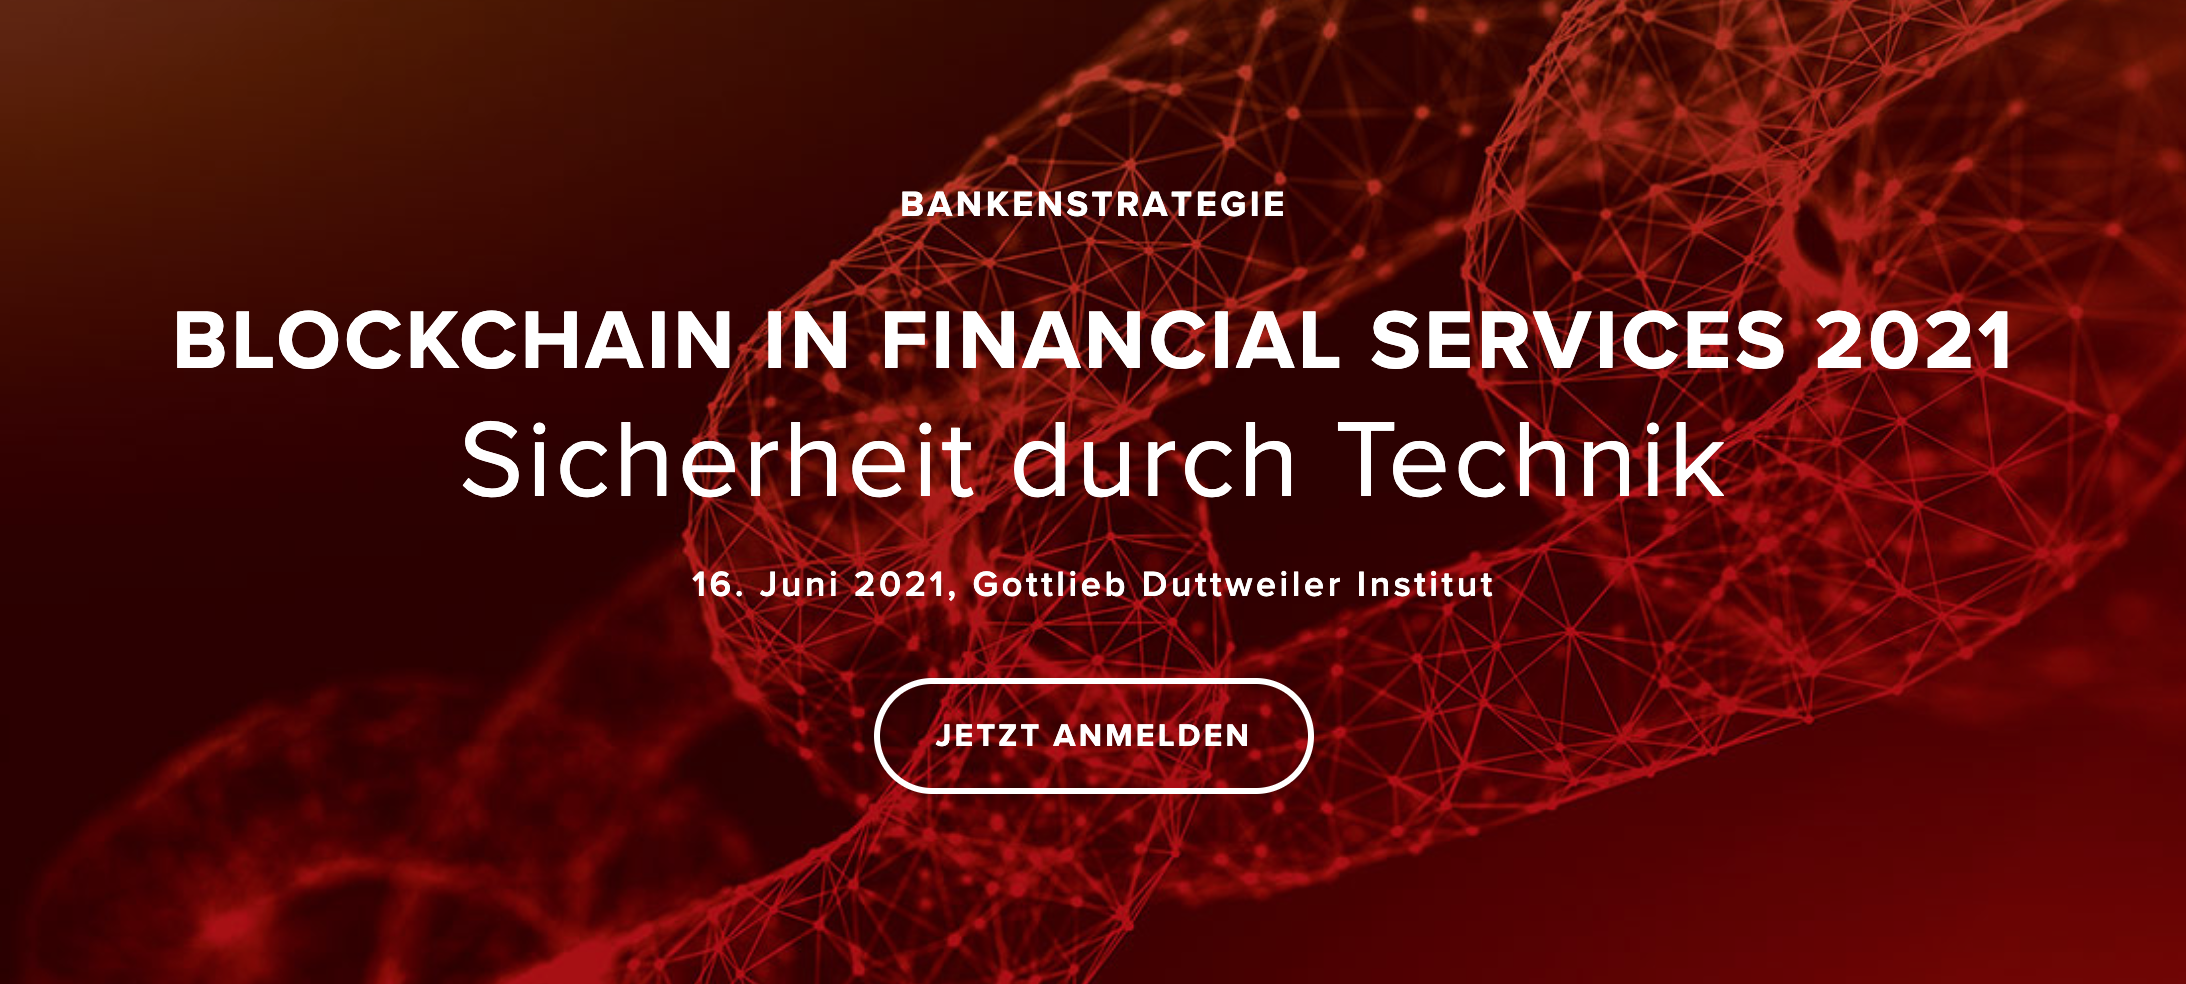 https://www.fuw-forum.ch/blockchain-in-financial-services-2021/